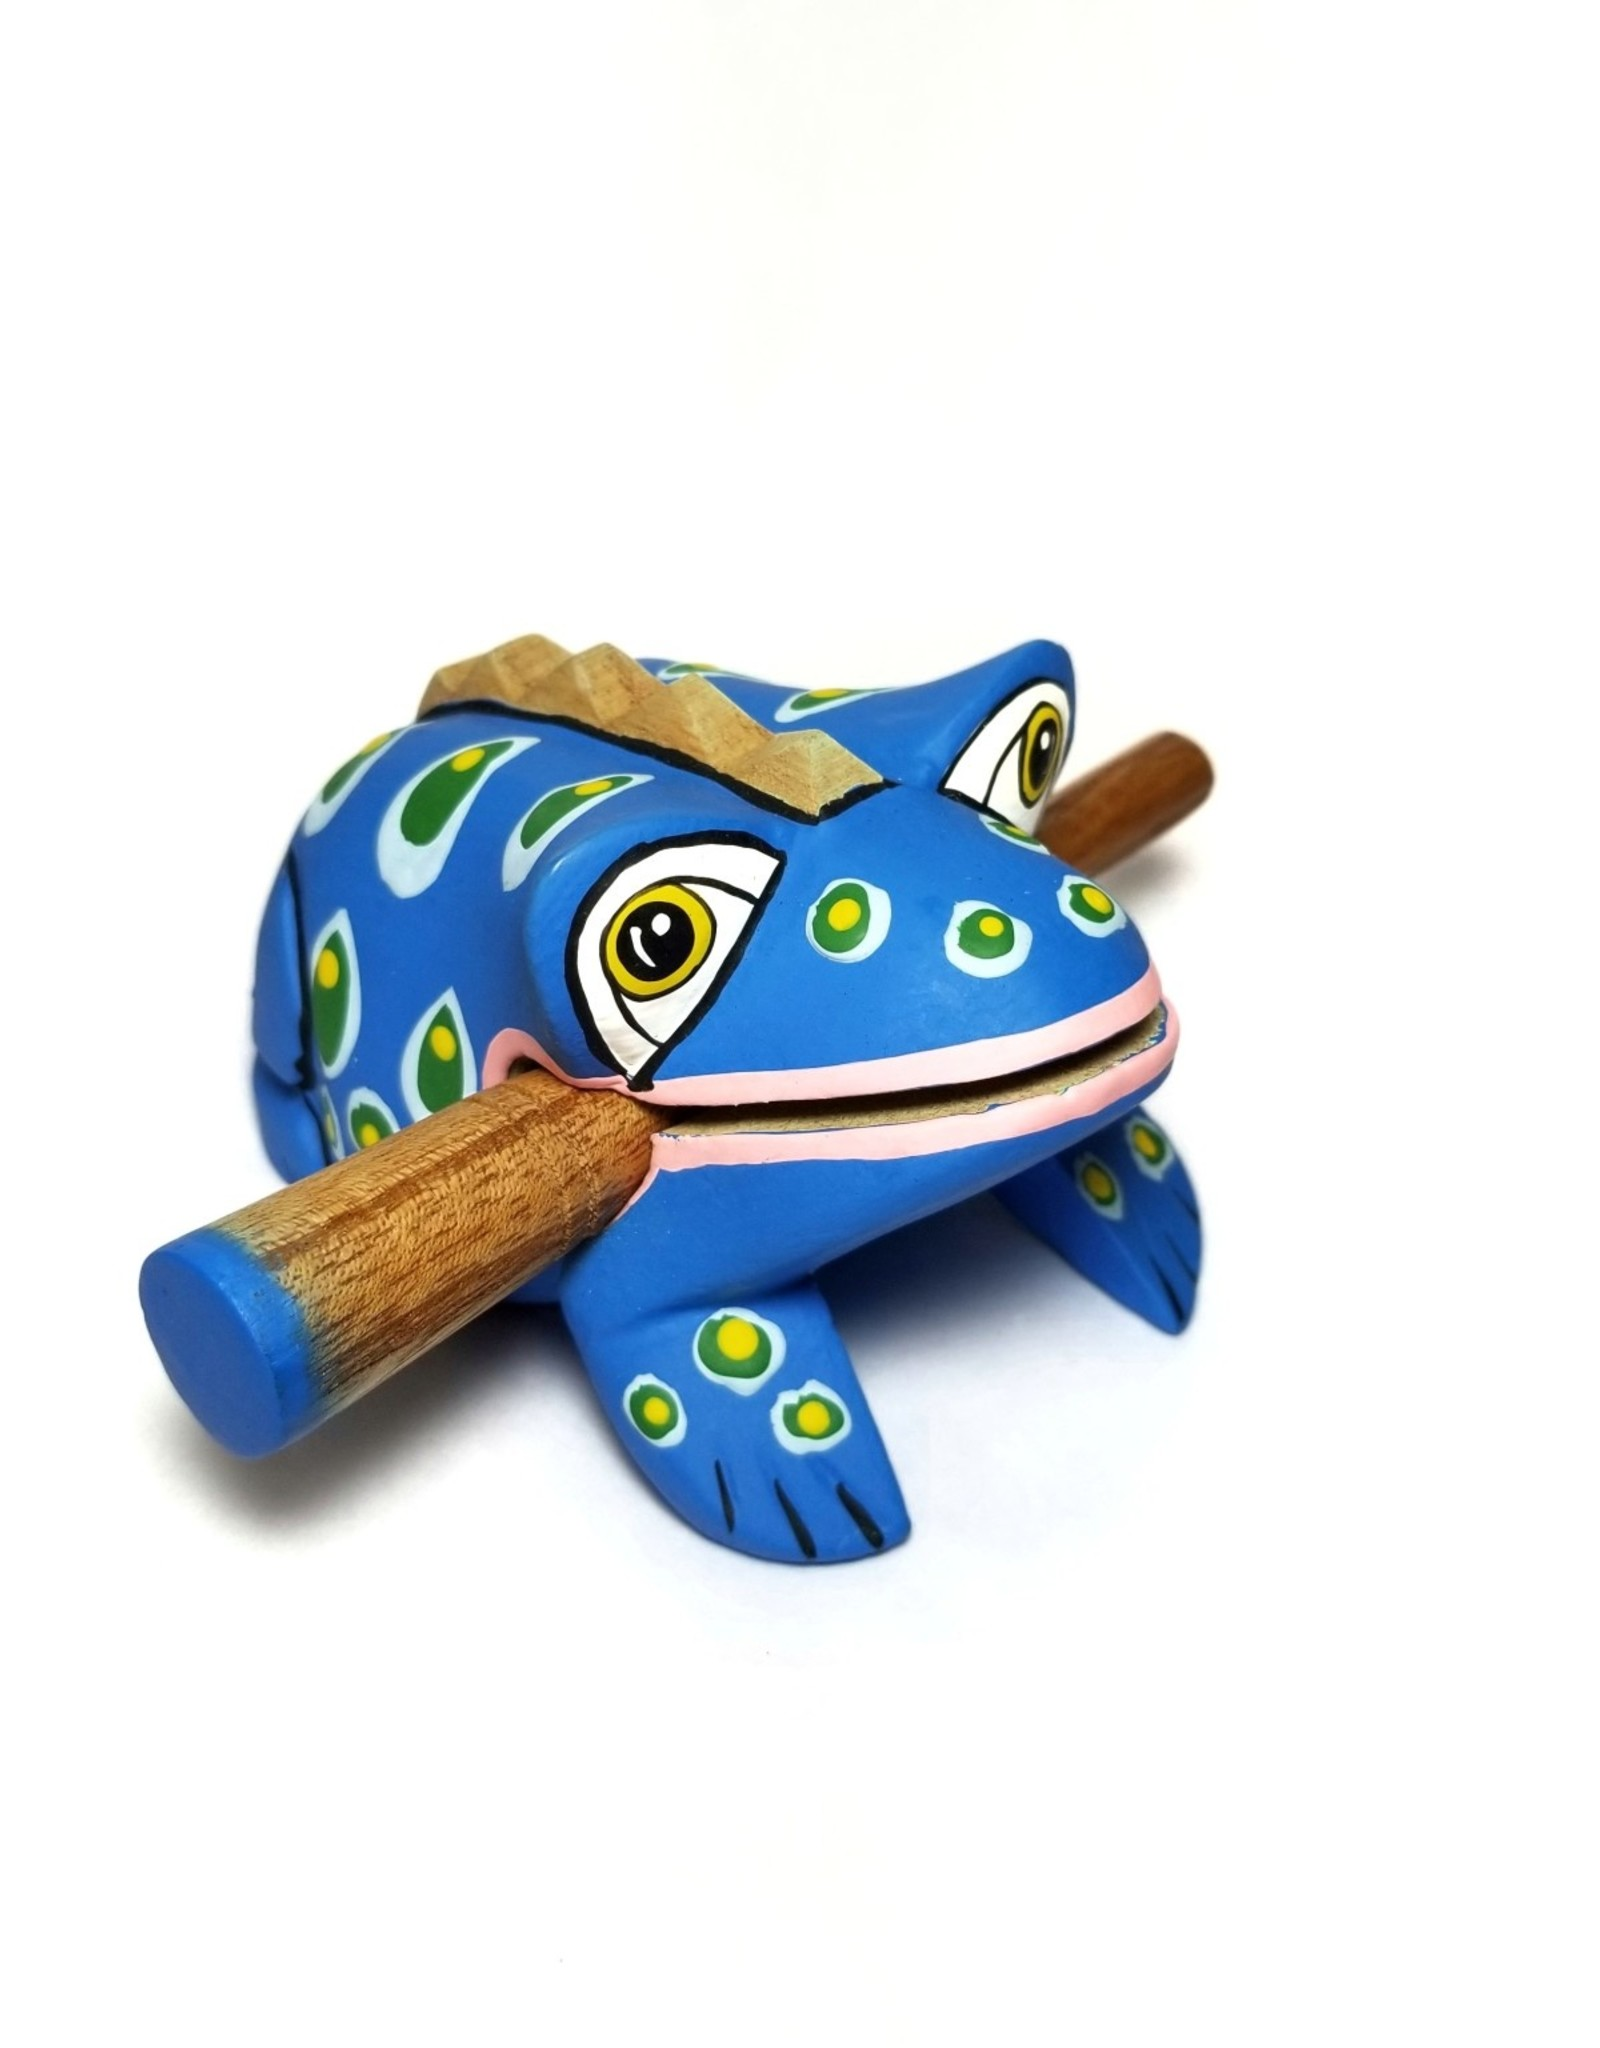 Ten Thousand Villages Blue Spotted Frog Instrument